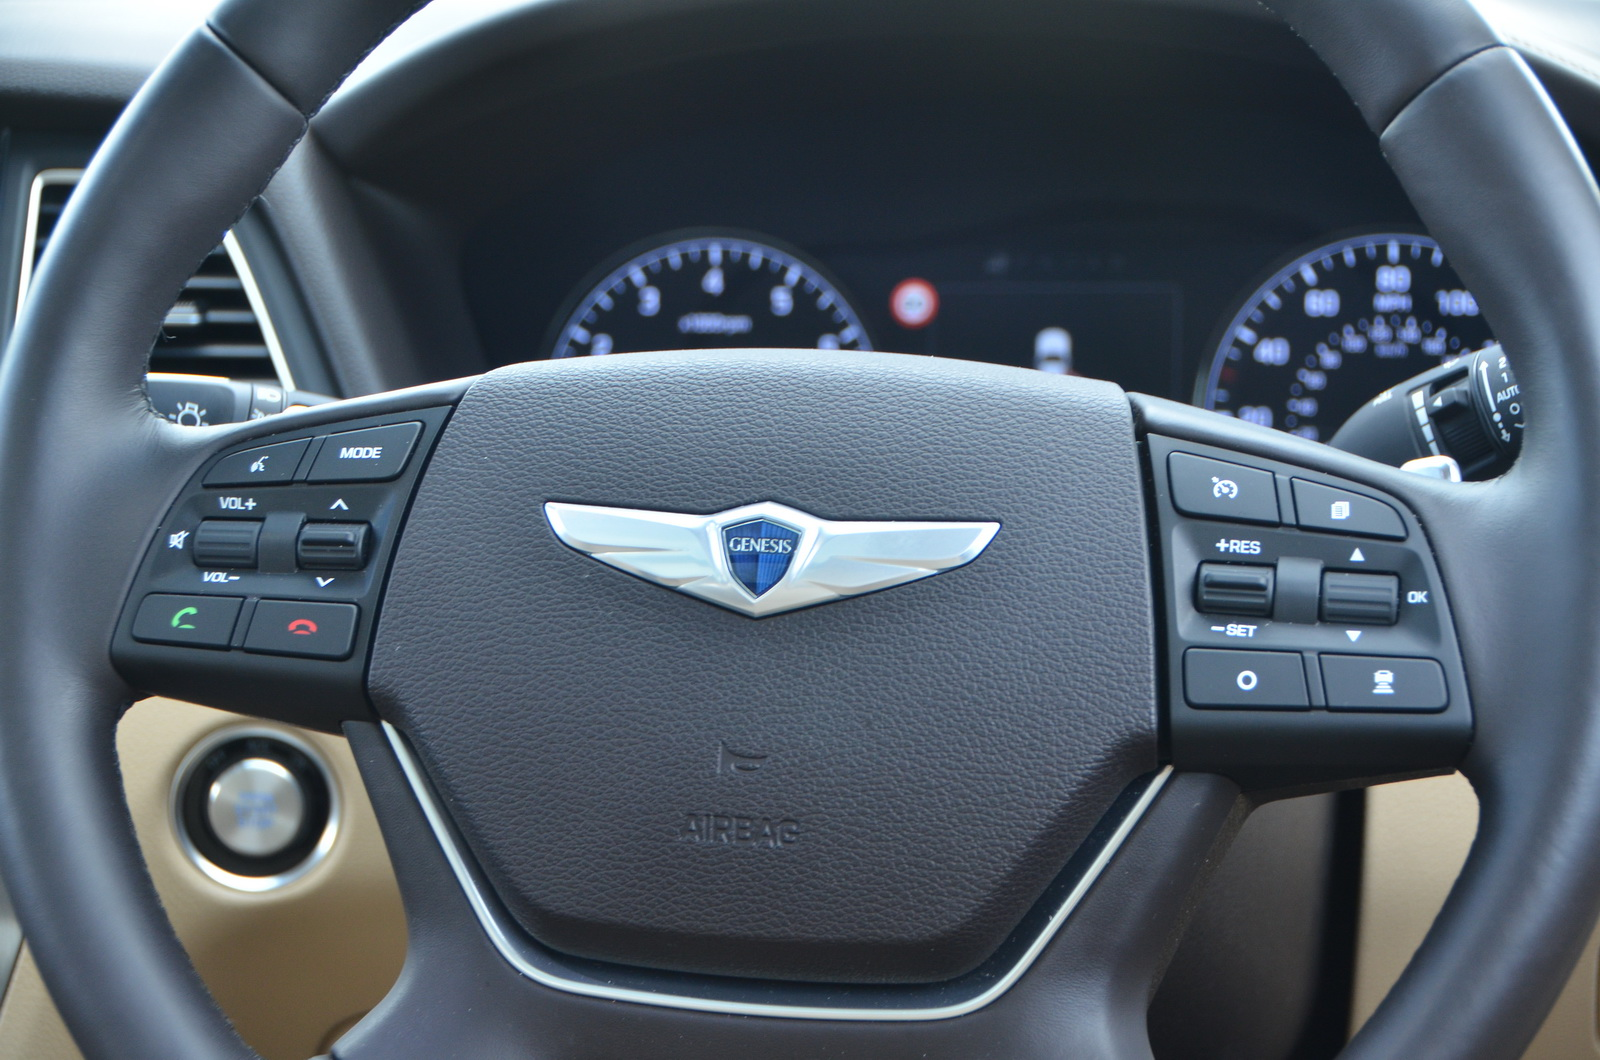 new hyundai genesis driven to see if it 39 s worth more than a bmw 535i. Black Bedroom Furniture Sets. Home Design Ideas